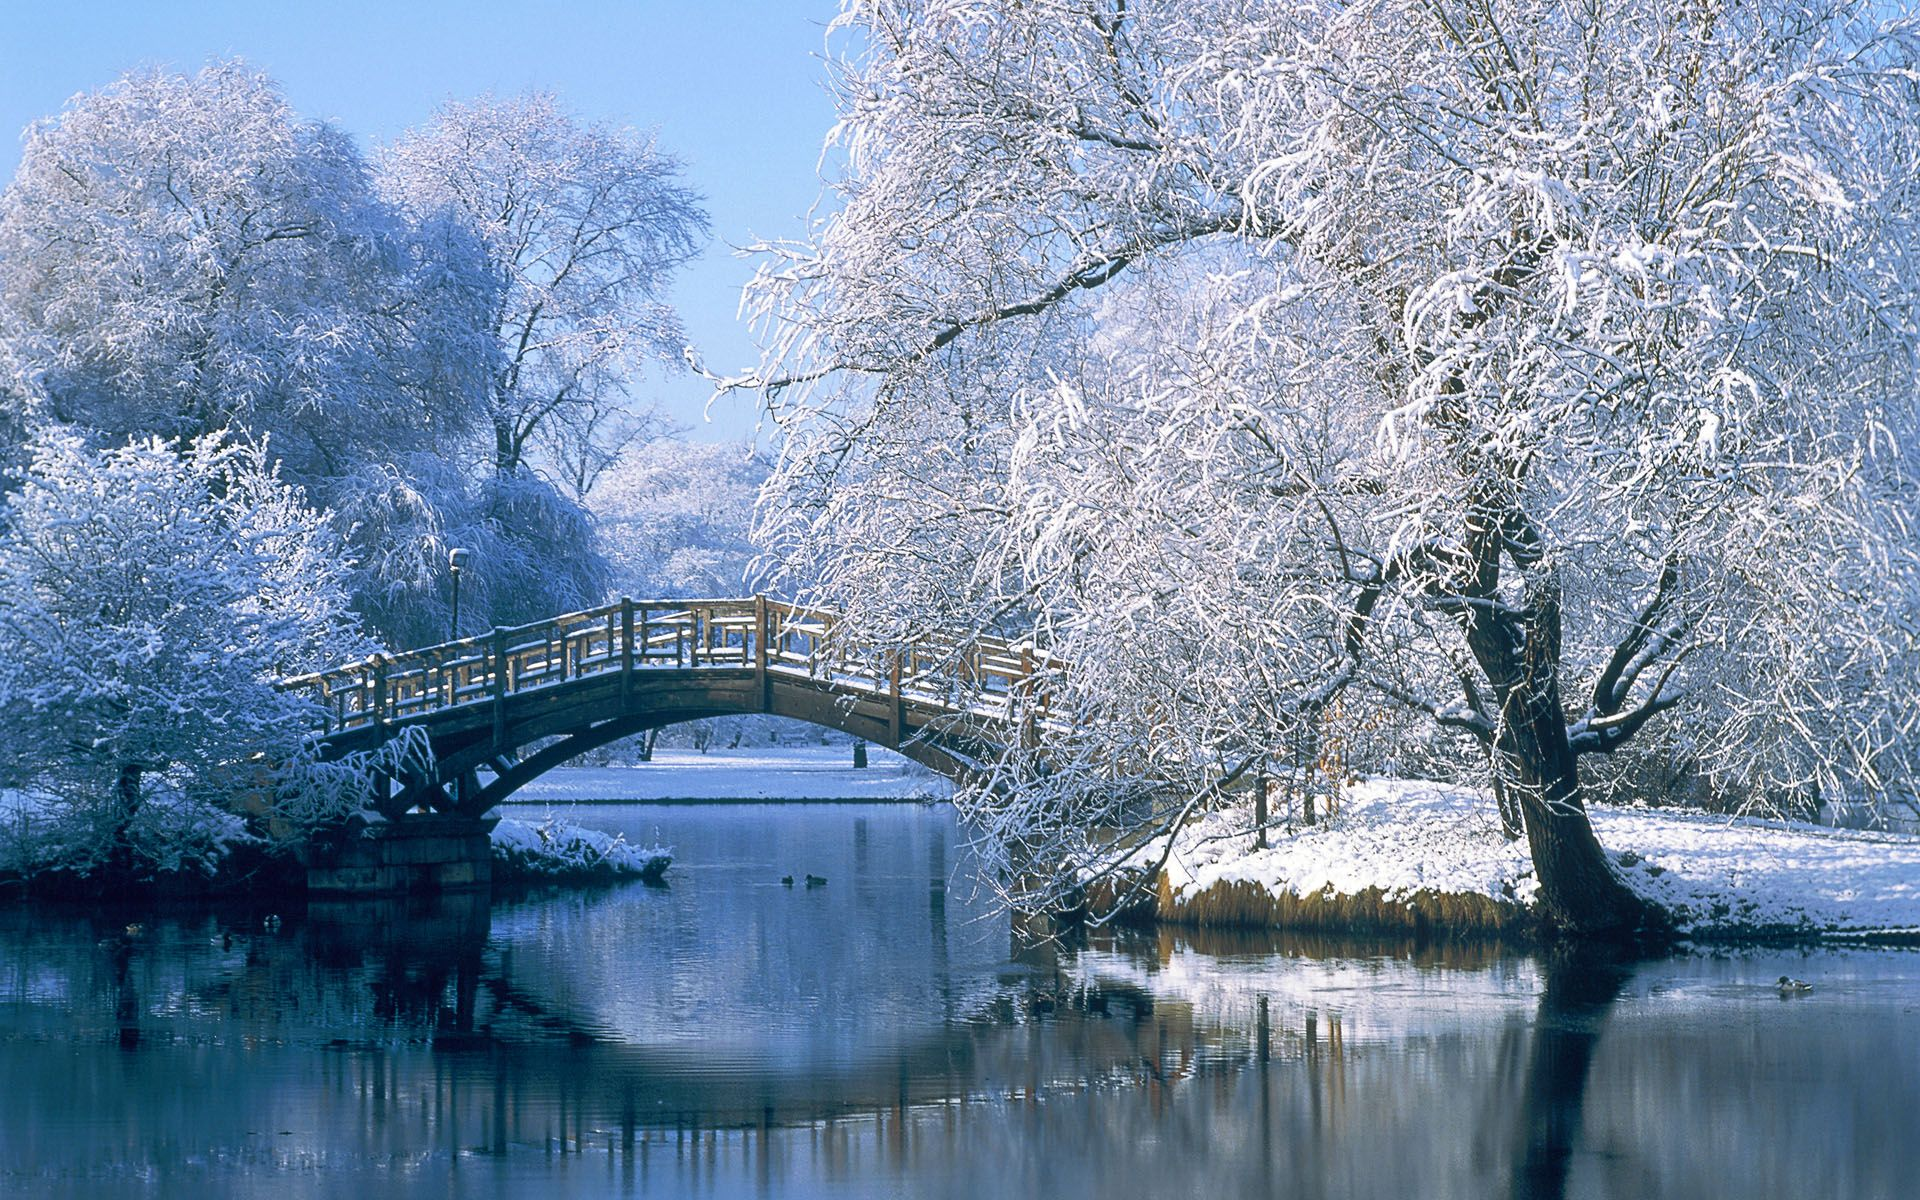 Cool Wallpaper High Resolution Winter - 274e94ea948e913feaf7a421569c37d9  Perfect Image Reference_807385.jpg